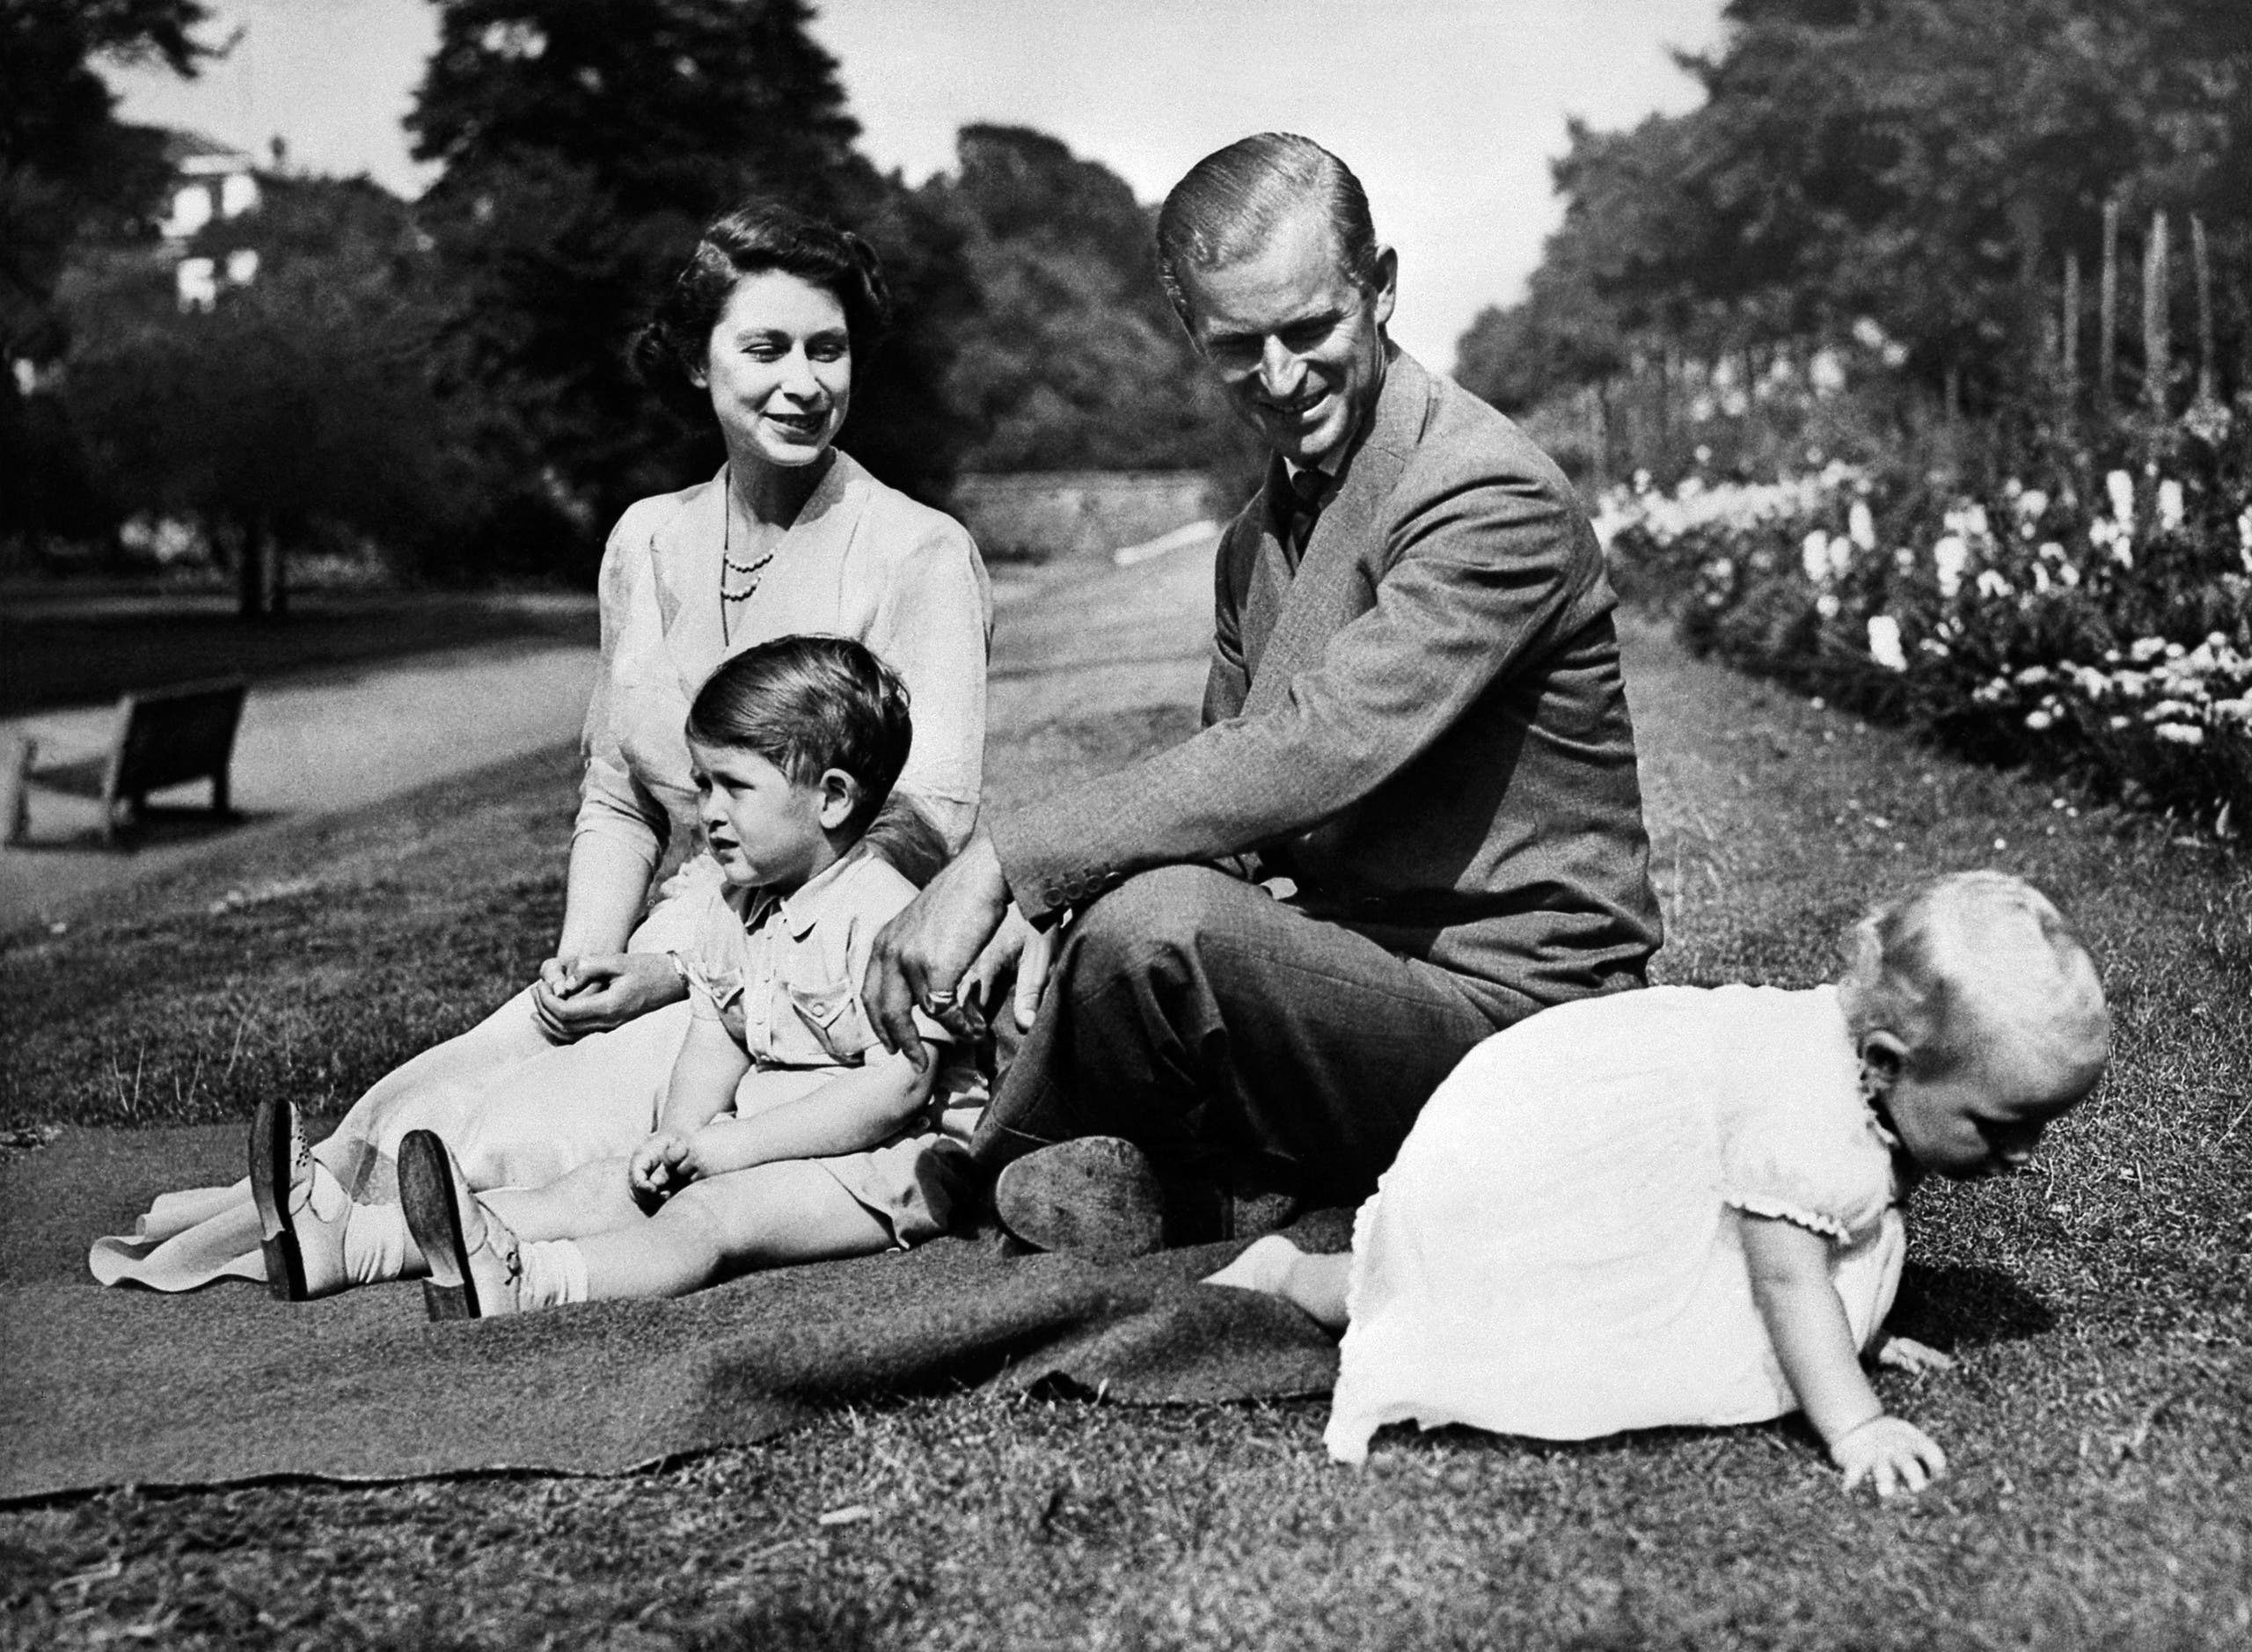 Undated picture showing the Royal British couple, Queen Elizabeth II, and her husband Philip, Duke of Edinburgh, with their two children, Charles, Prince of Wales (L) and Princess Anne (R). (AFP)